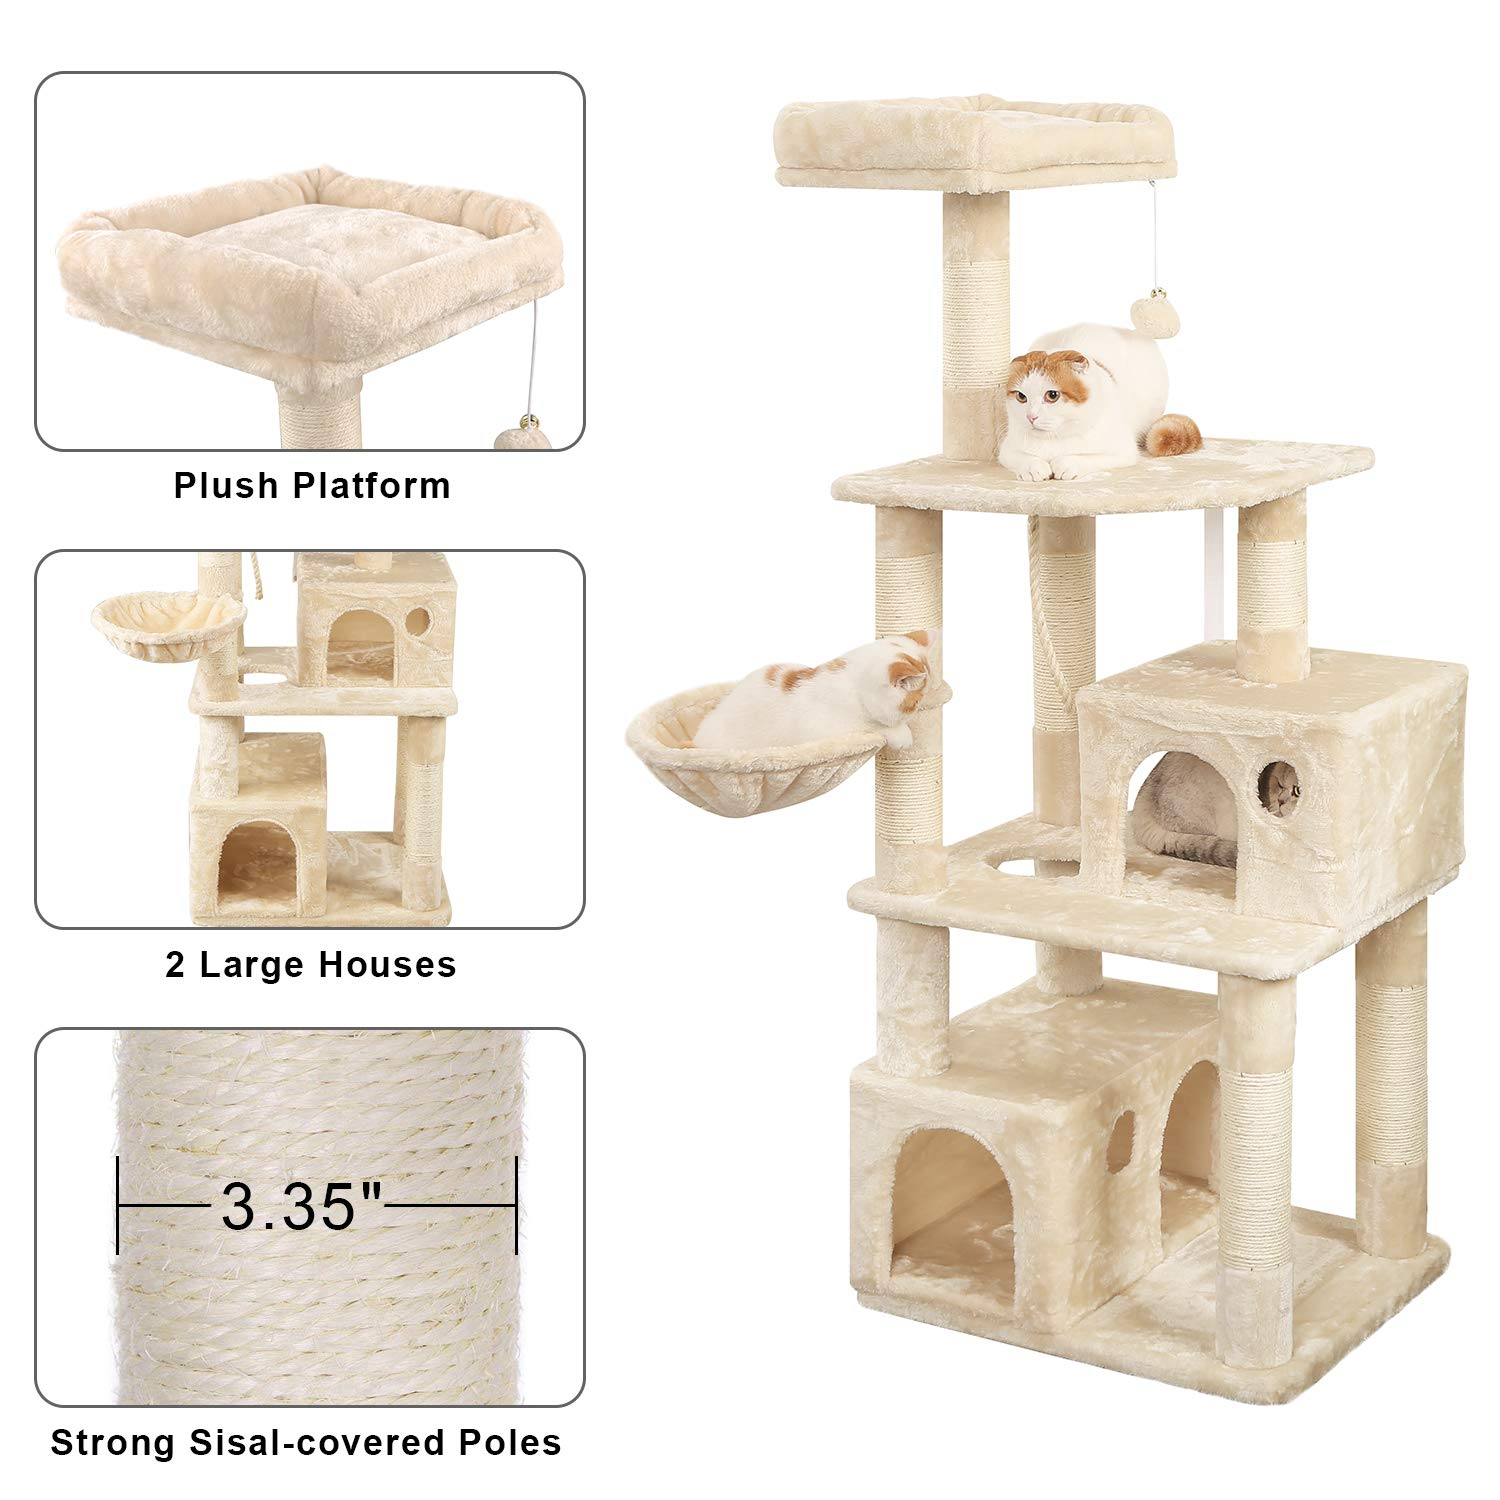 WLIVE 59'' Large Cat Tree Condo with Sisal Scratching Posts, 2 Plush Condos and Basket Lounger, Cat Tower Furniture WF062A by WLIVE (Image #3)